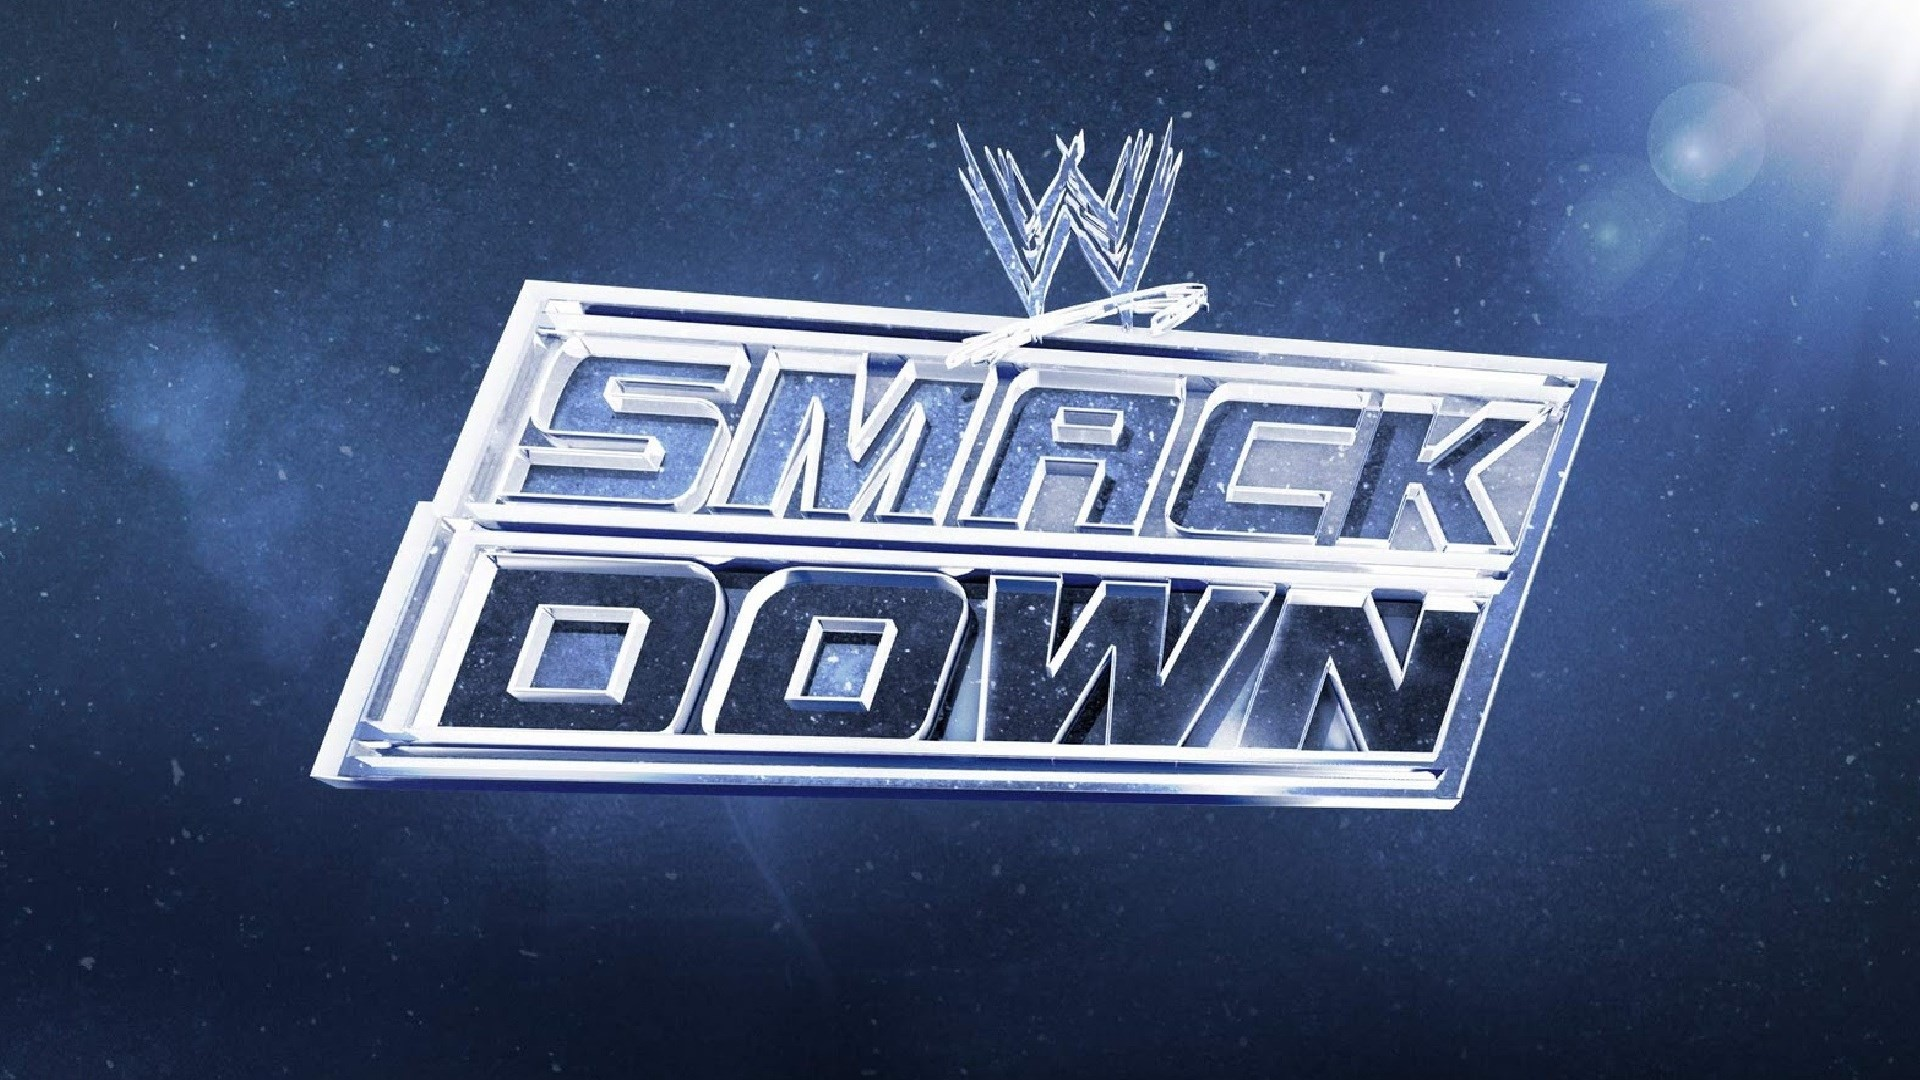 1920x1080 widescreen backgrounds the flintstones. wwf smackdown desktop